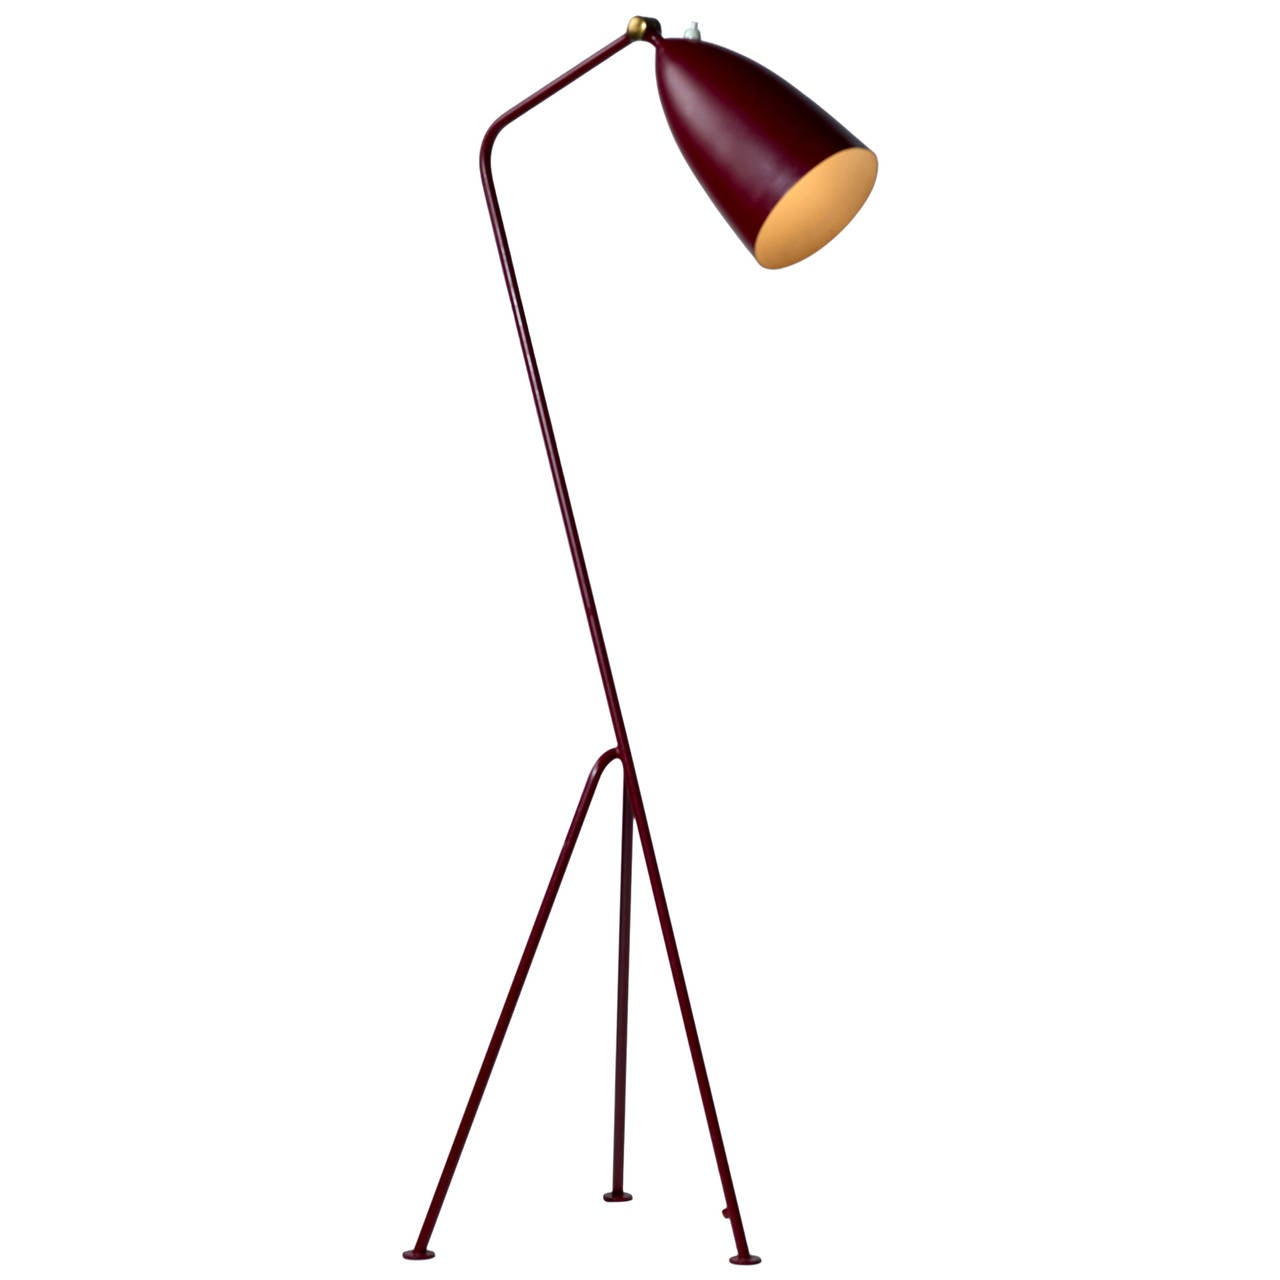 greta magnusson grossman grasshopper floor lamp by bergboms malm model 831 at 1stdibs. Black Bedroom Furniture Sets. Home Design Ideas